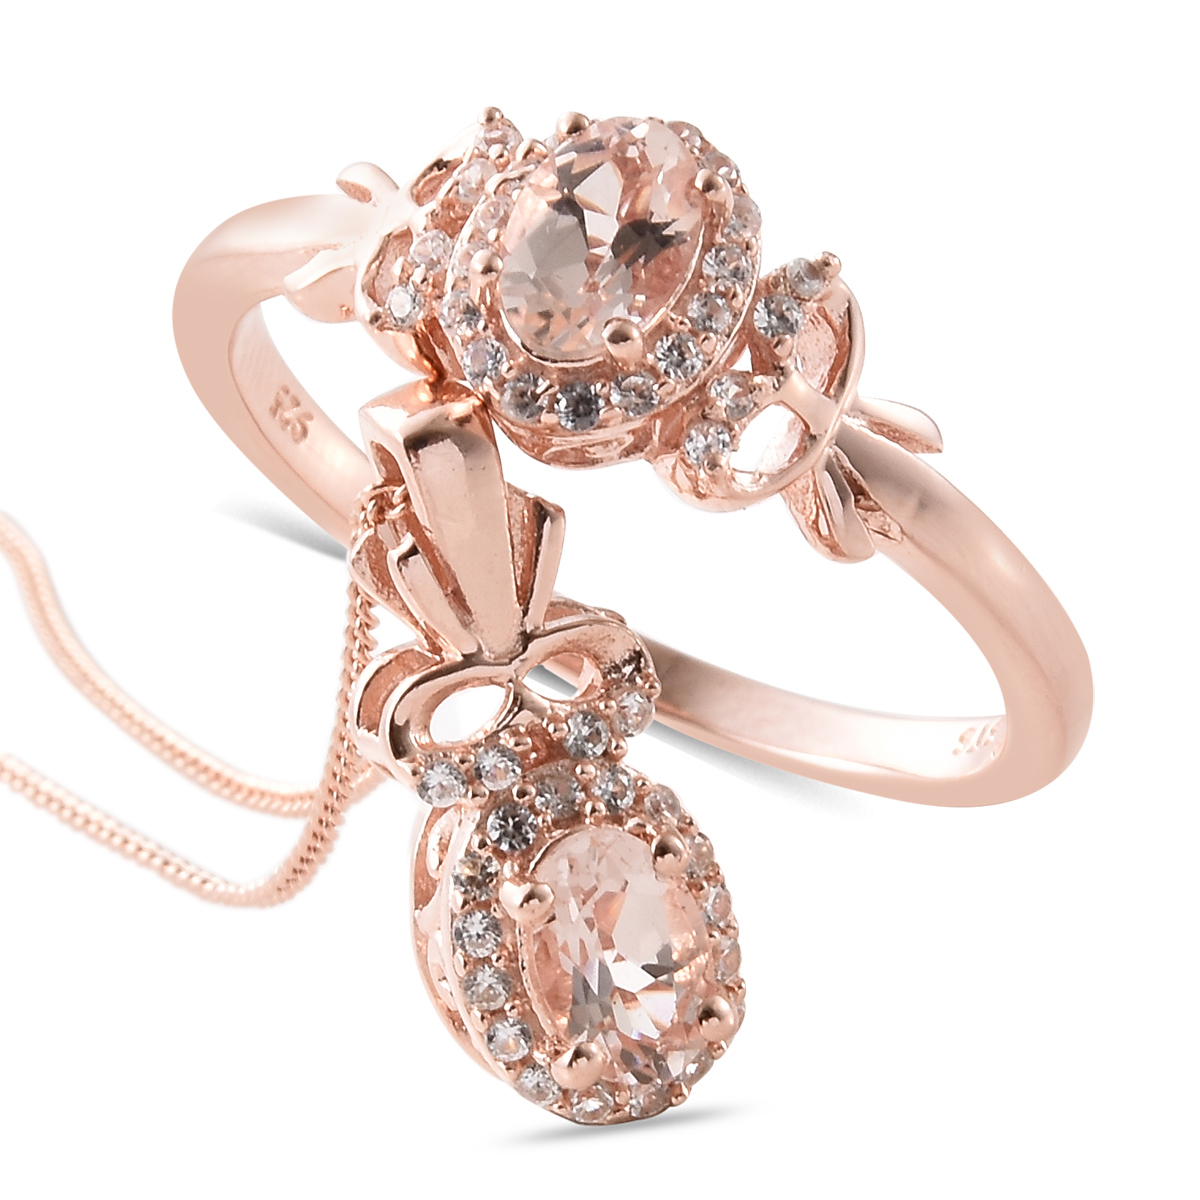 Marropino Morganite, Cambodian Zircon Vermeil Rg Over Sterling Silver Bow Ring (Size 9) And Pendant With Chain (20 In) Tgw 1.20 Cts. For Most Recently Released Classic Bow Rings (Gallery 25 of 25)